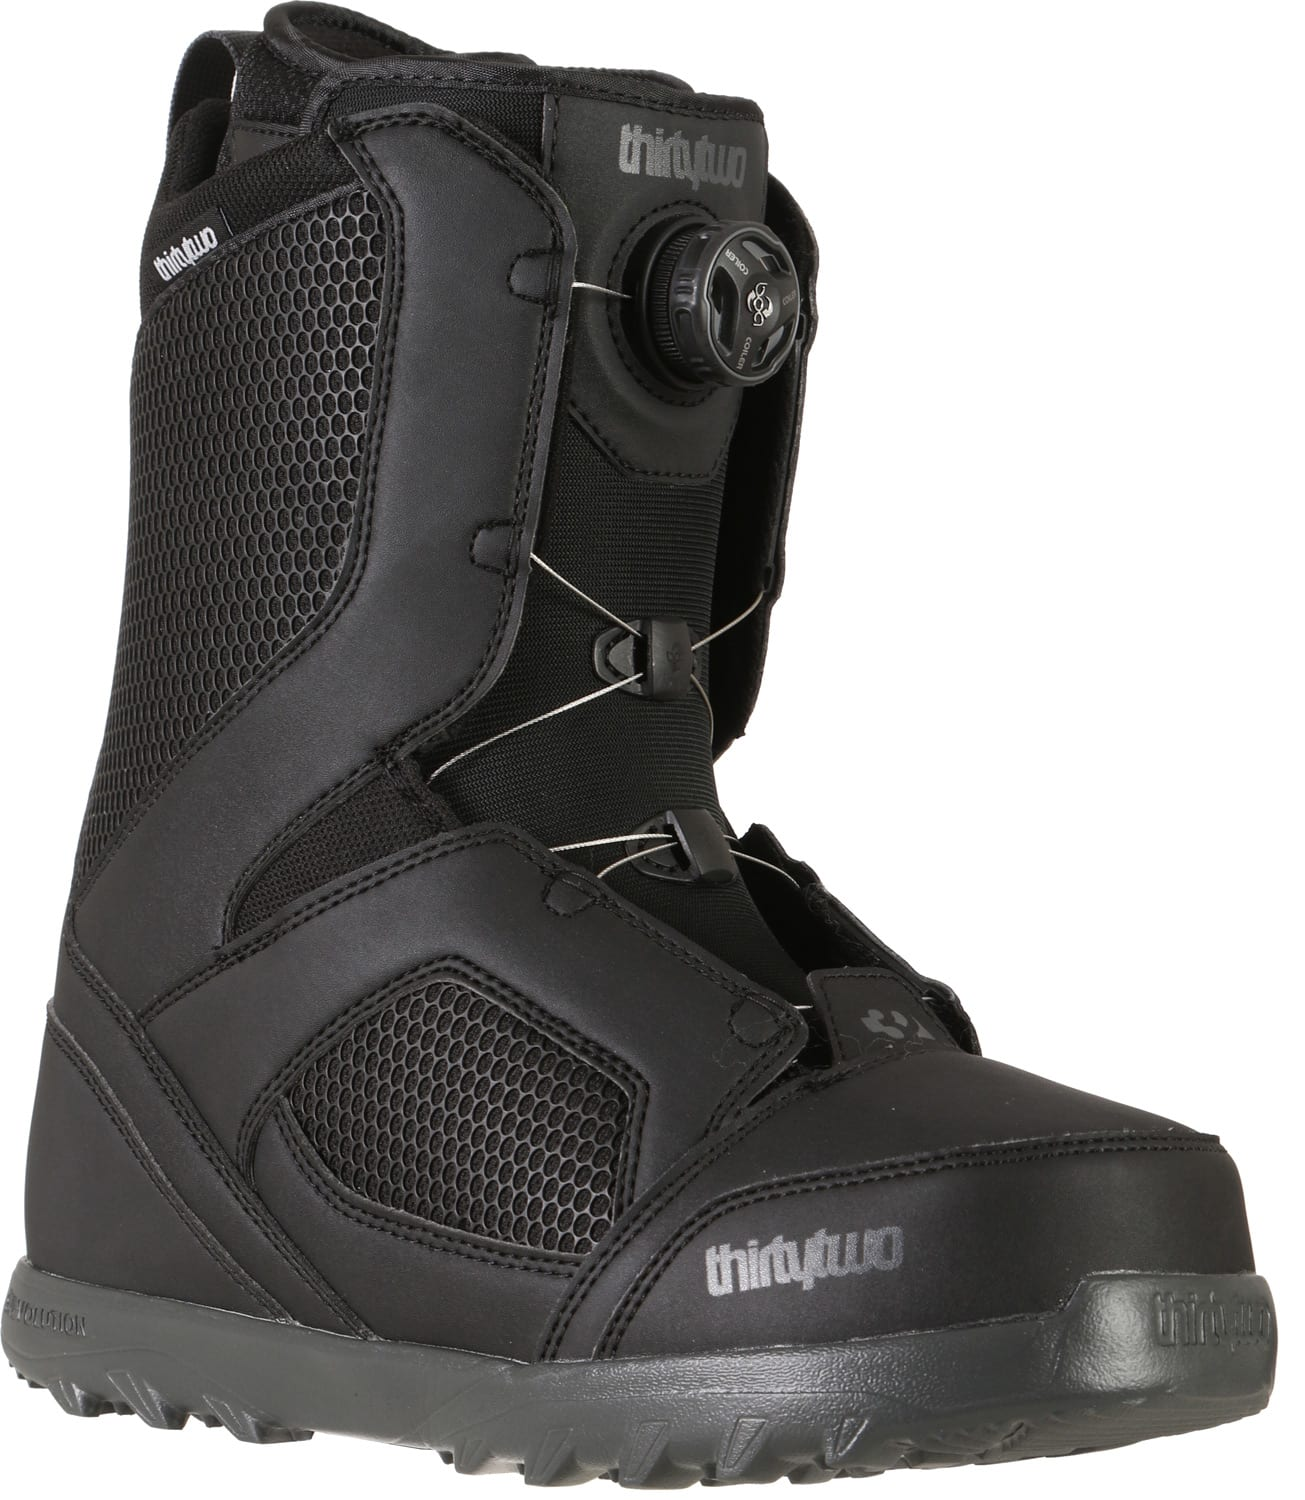 32 Thirty Two Stw Boa Snowboard Boots 2018